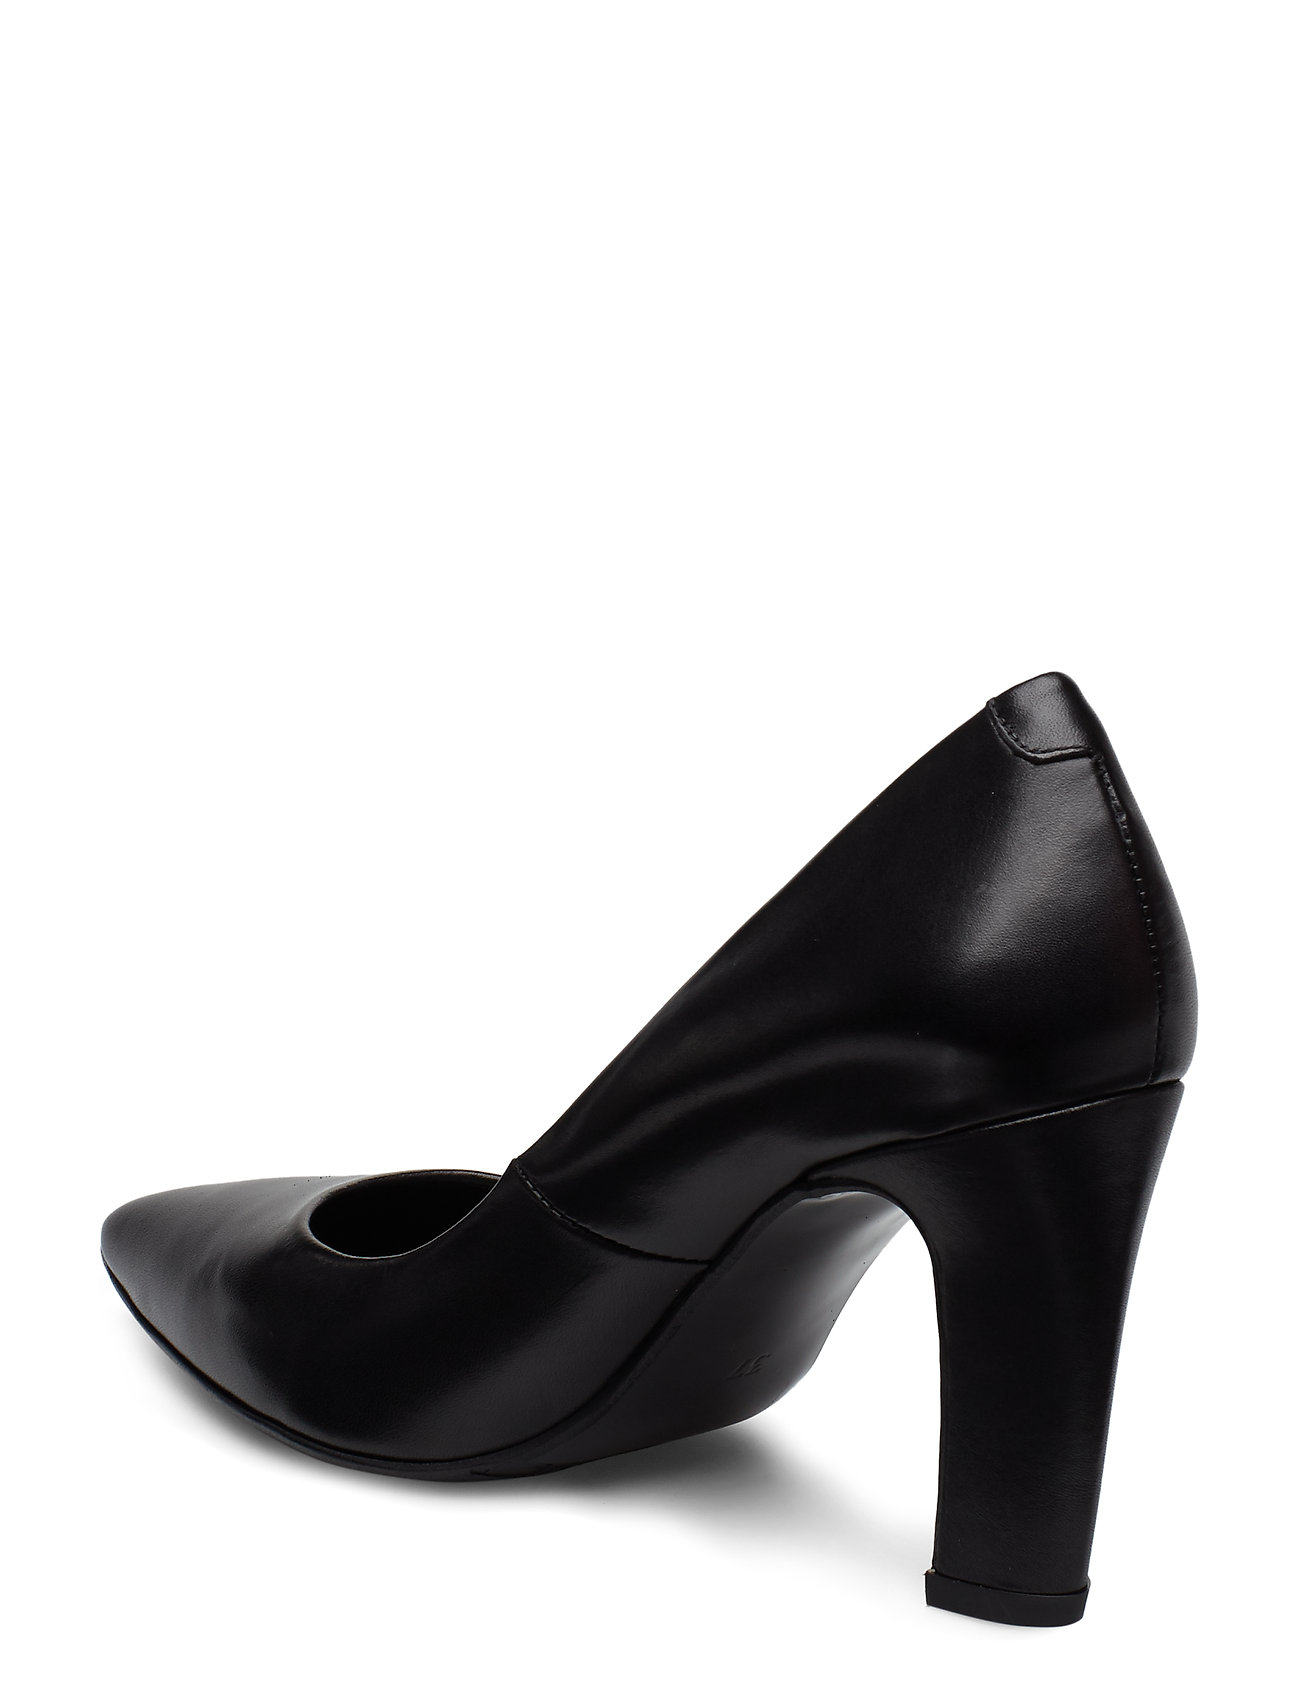 3333black Pumps Calf Bi 80Billi Calf Pumps 80Billi 3333black exBCQdWro